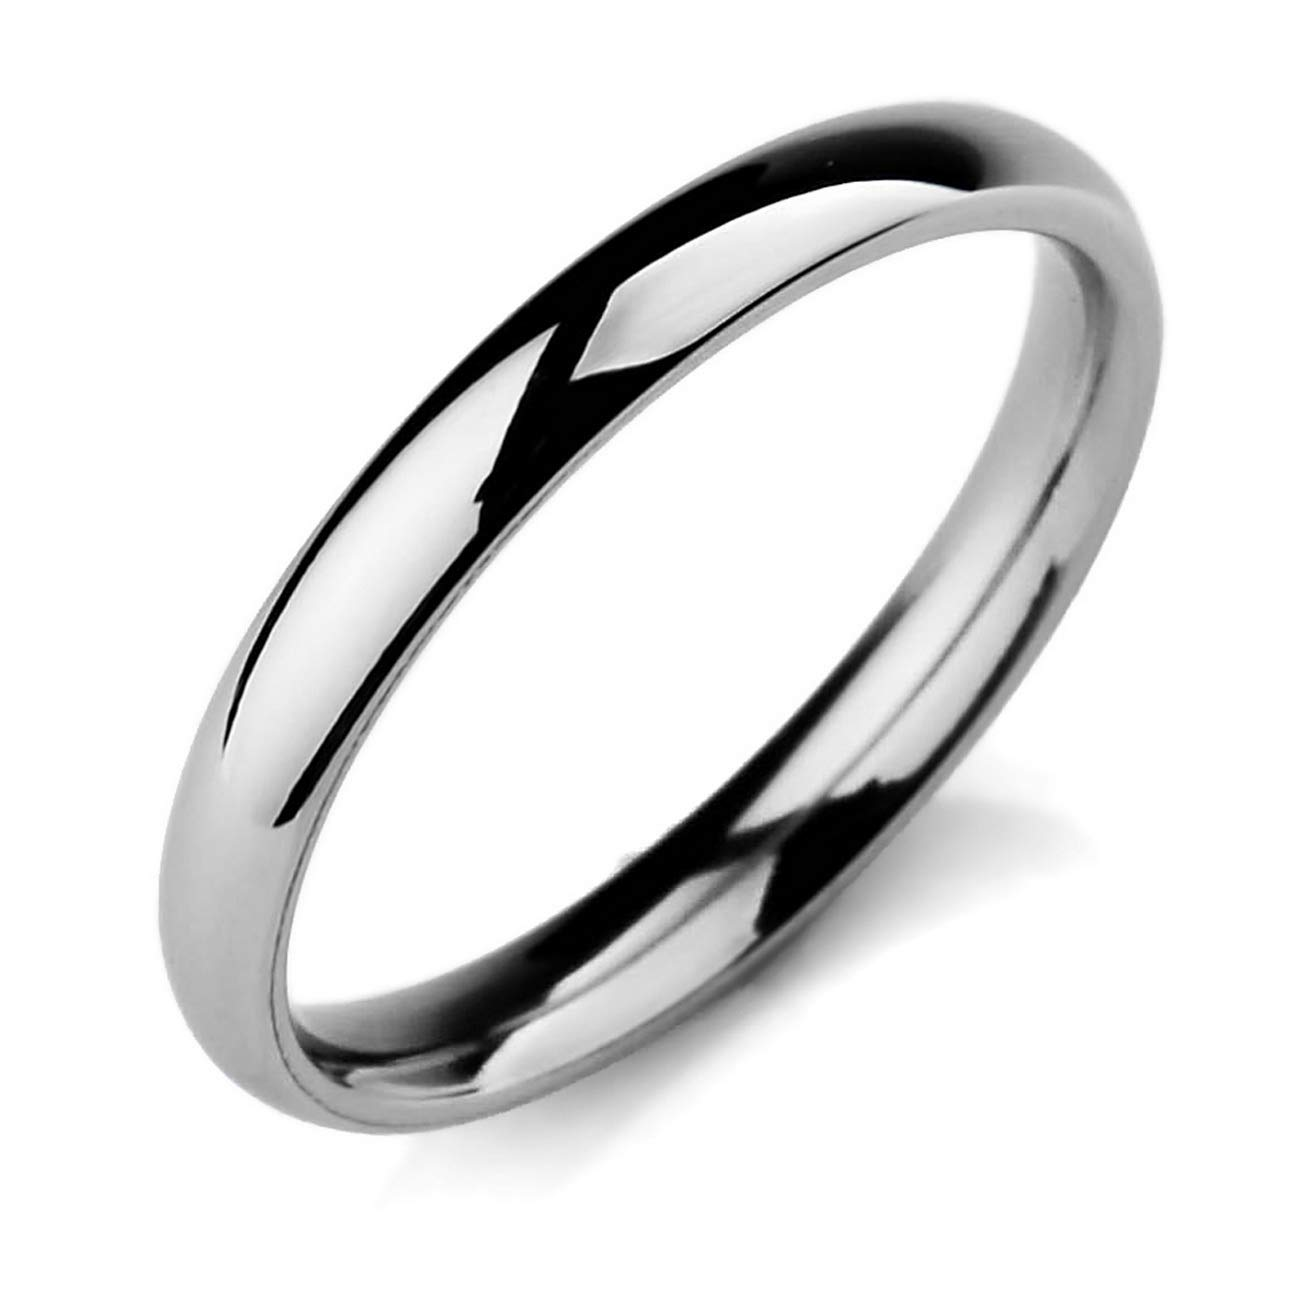 MeMeDIY 3mm Silver Tone Stainless Steel Ring Band Wedding Love Size 7 - Customized Engraving